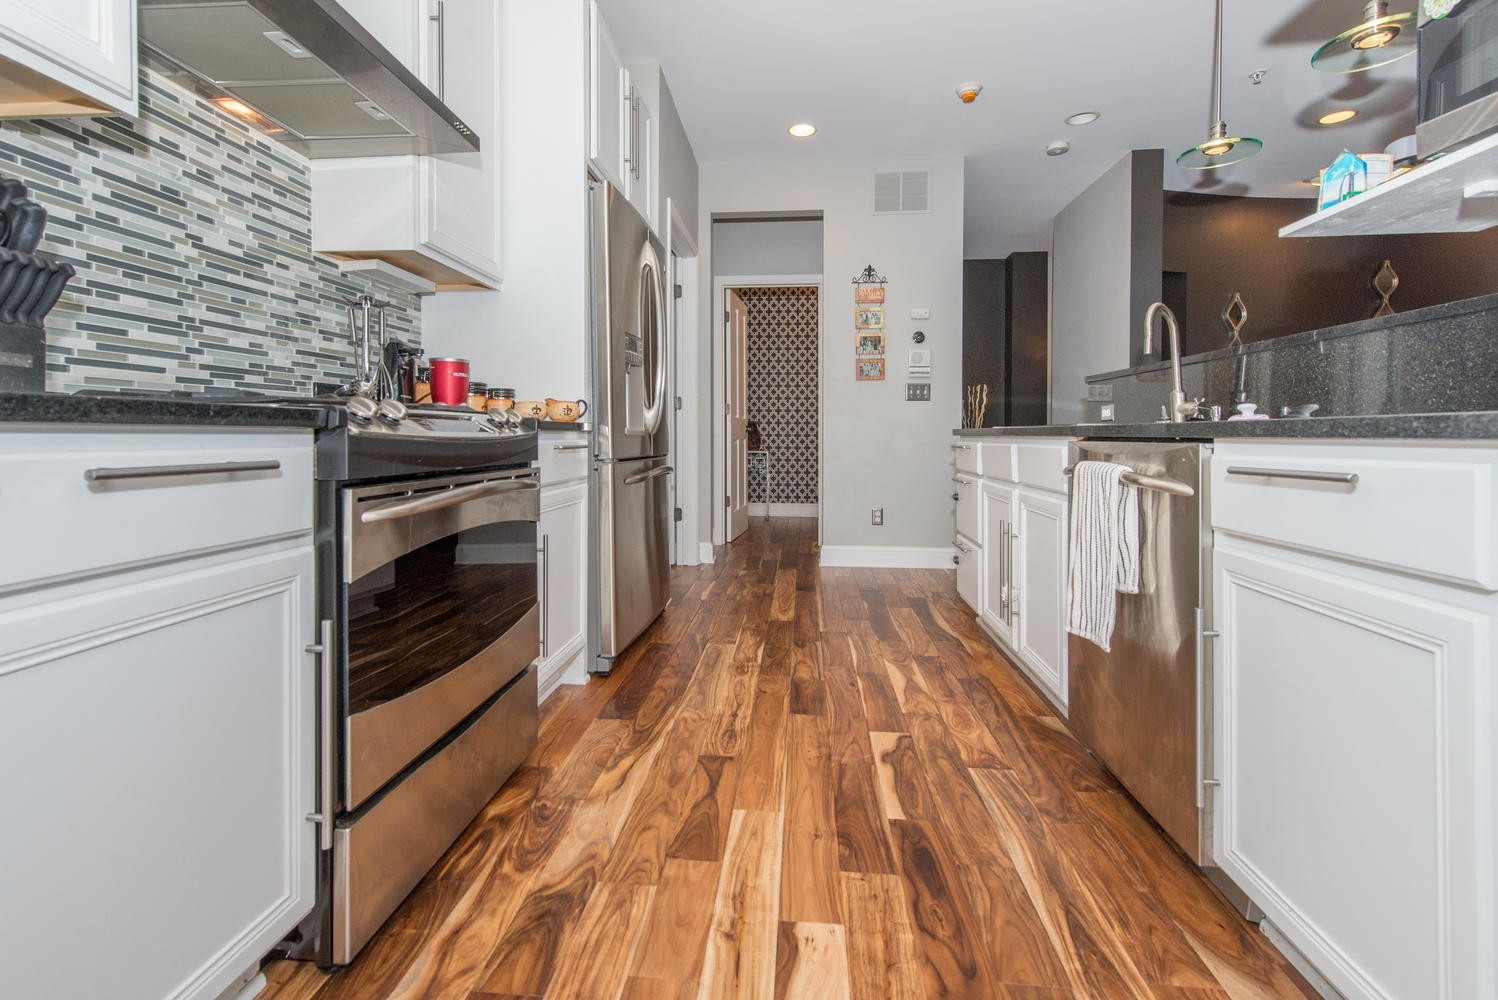 how to match hardwood floors of 9 mile creek acacia hand scraped acacia confusa wood floors in acacia handscraped natural hardwood flooring living room acacia engineered kitchen acacia engineered